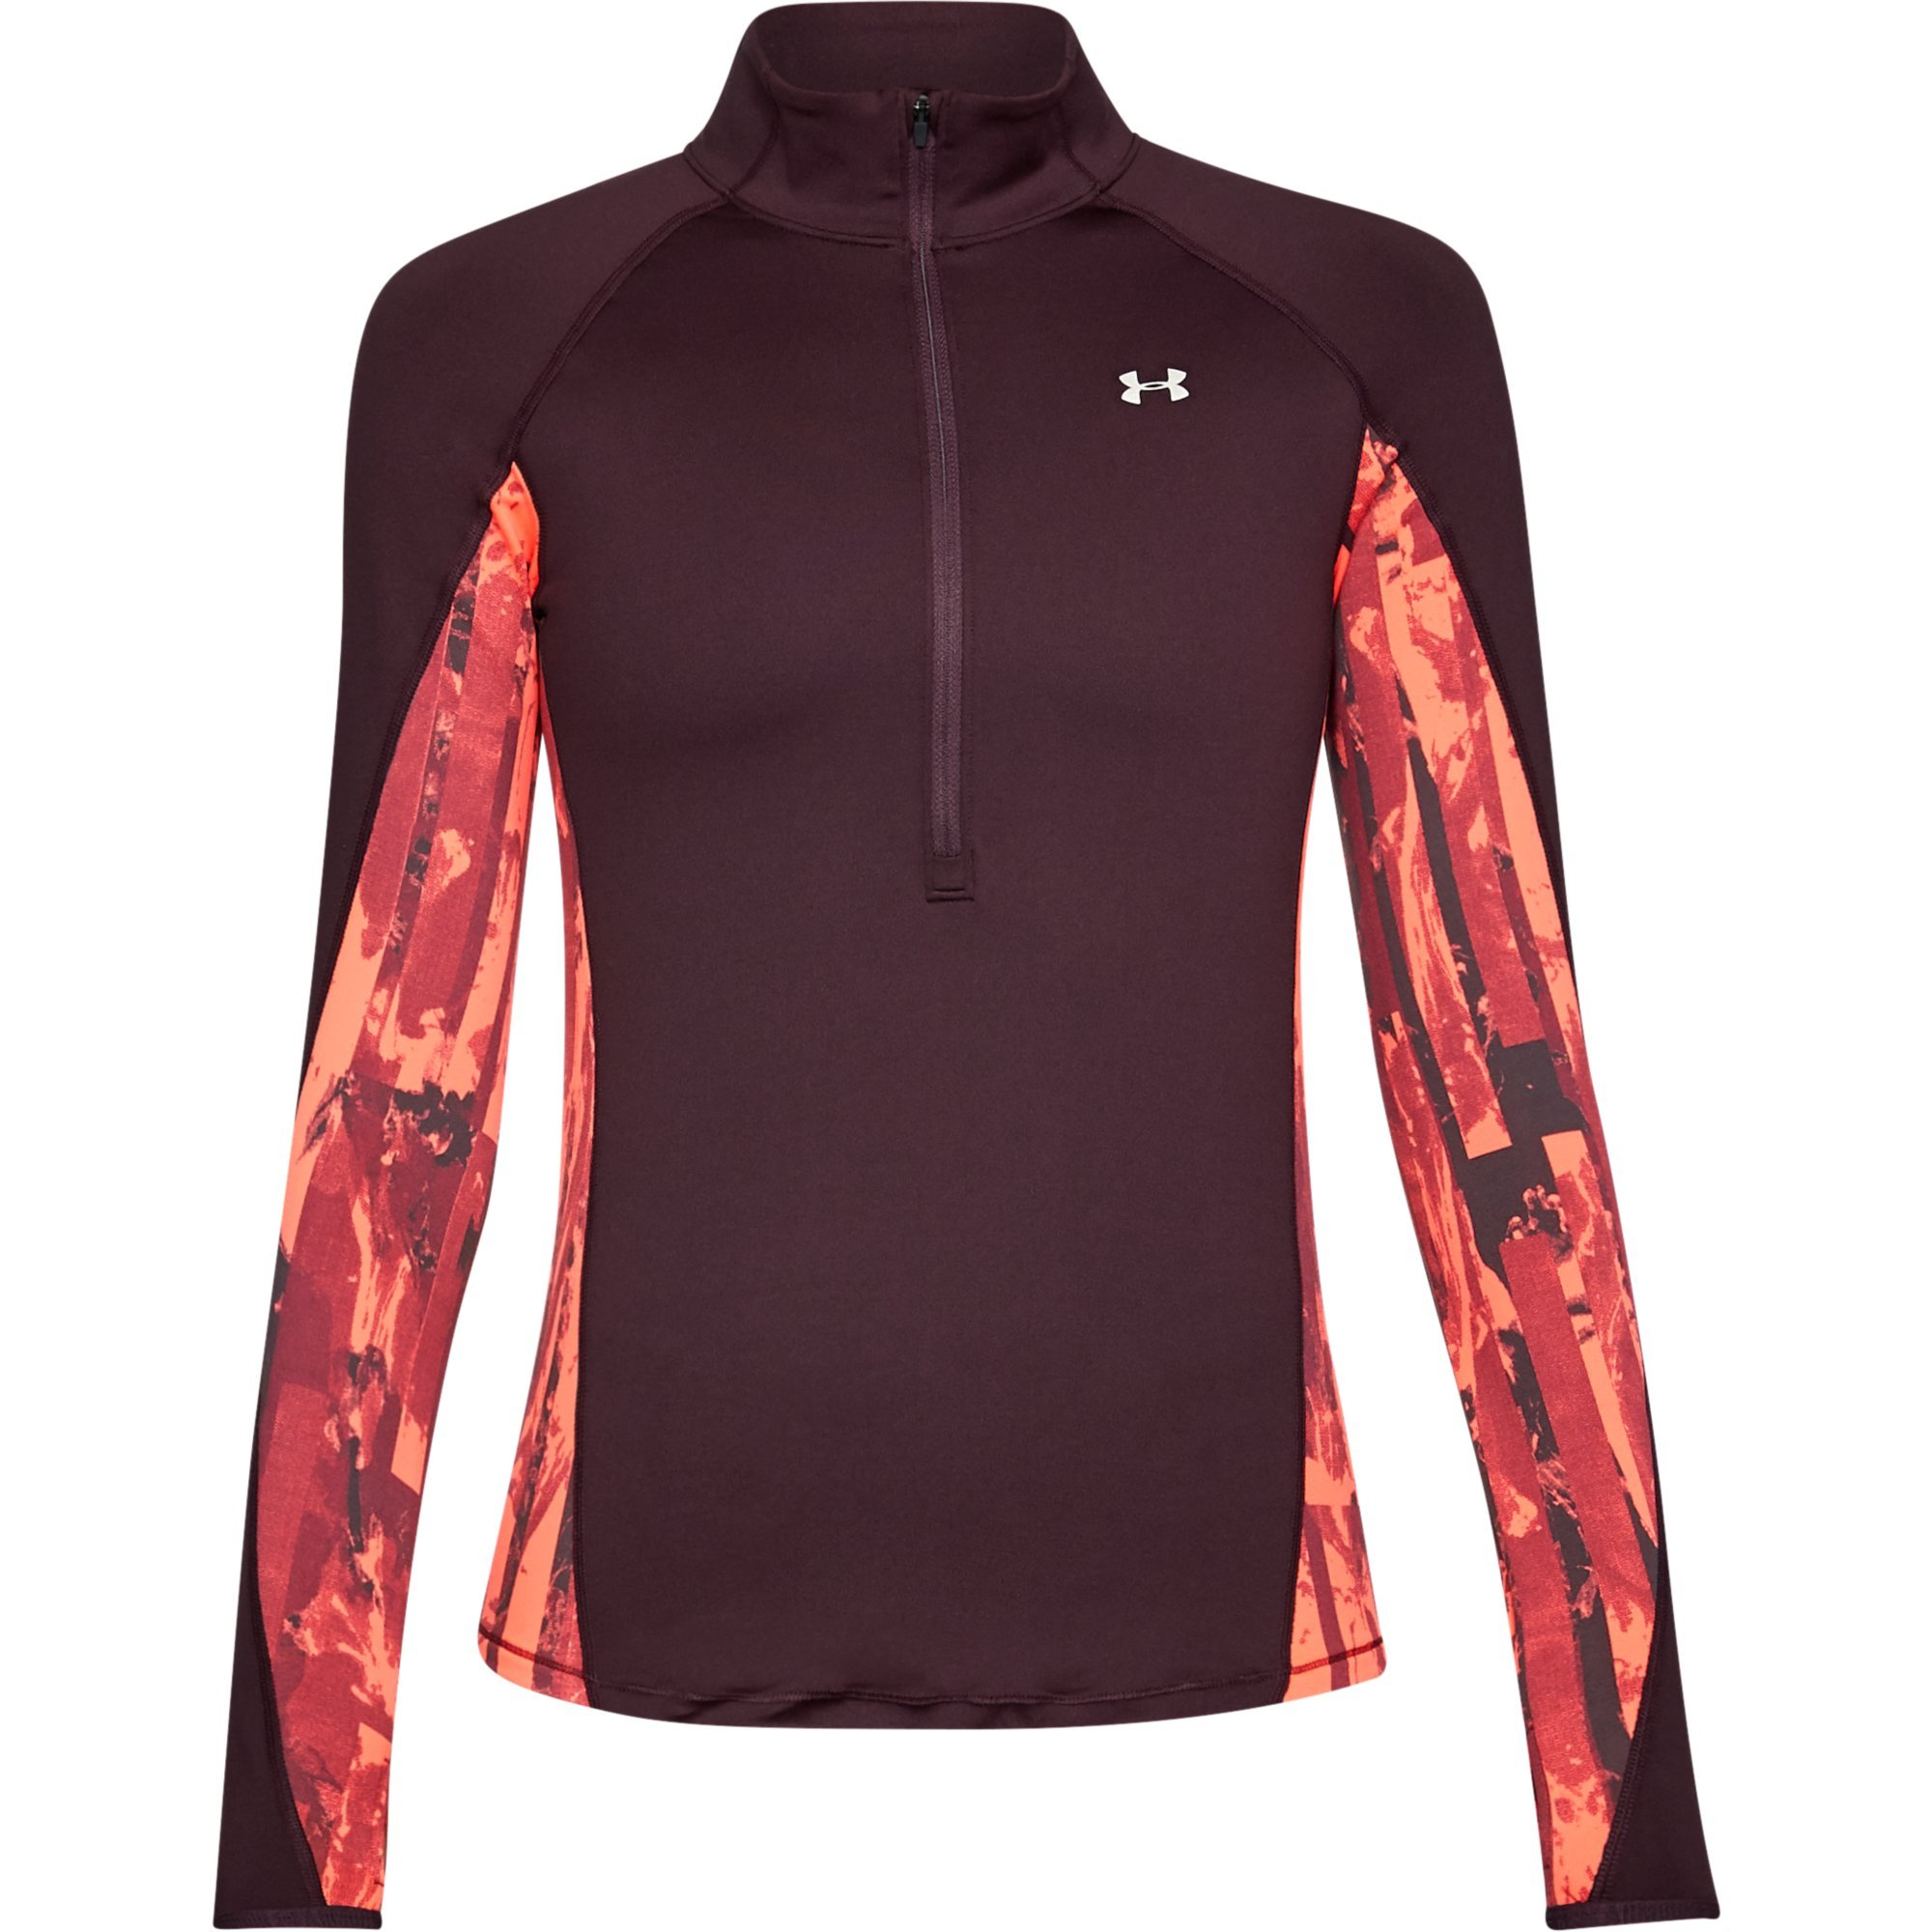 Under Armour ColdGear Armour Printed ½ Zip XS Raisin RED by Under Armour (Image #1)